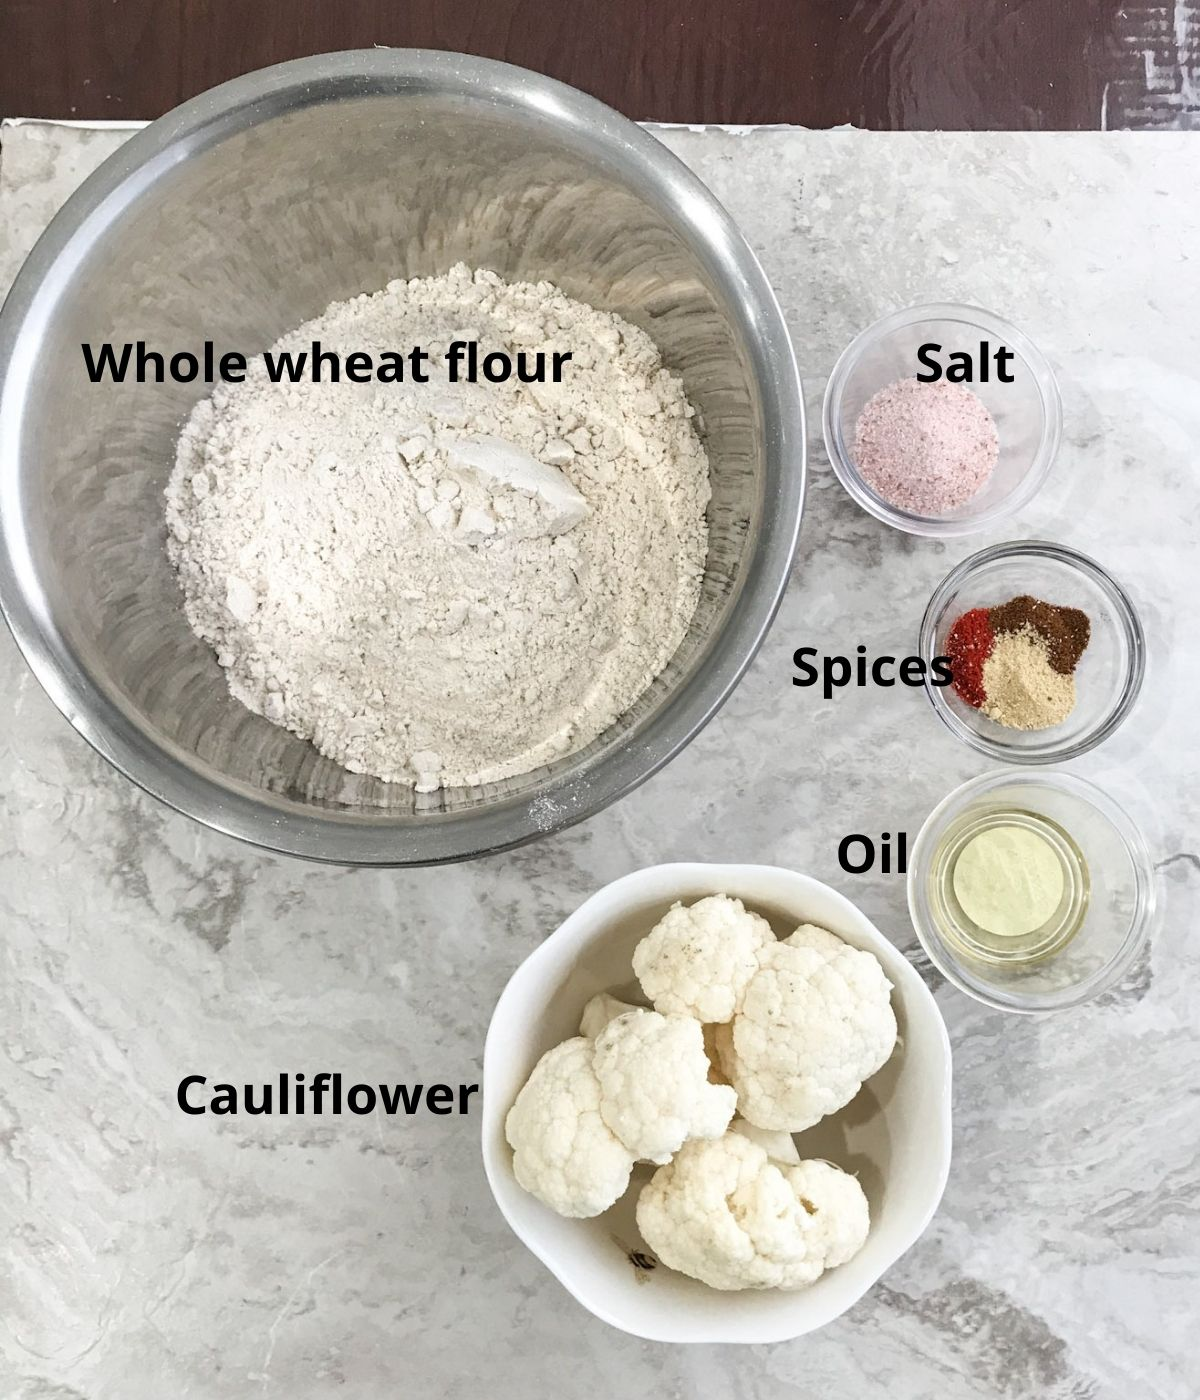 All the ingredients like flour,cauliflower and spices are placed on the flat surface for paratha